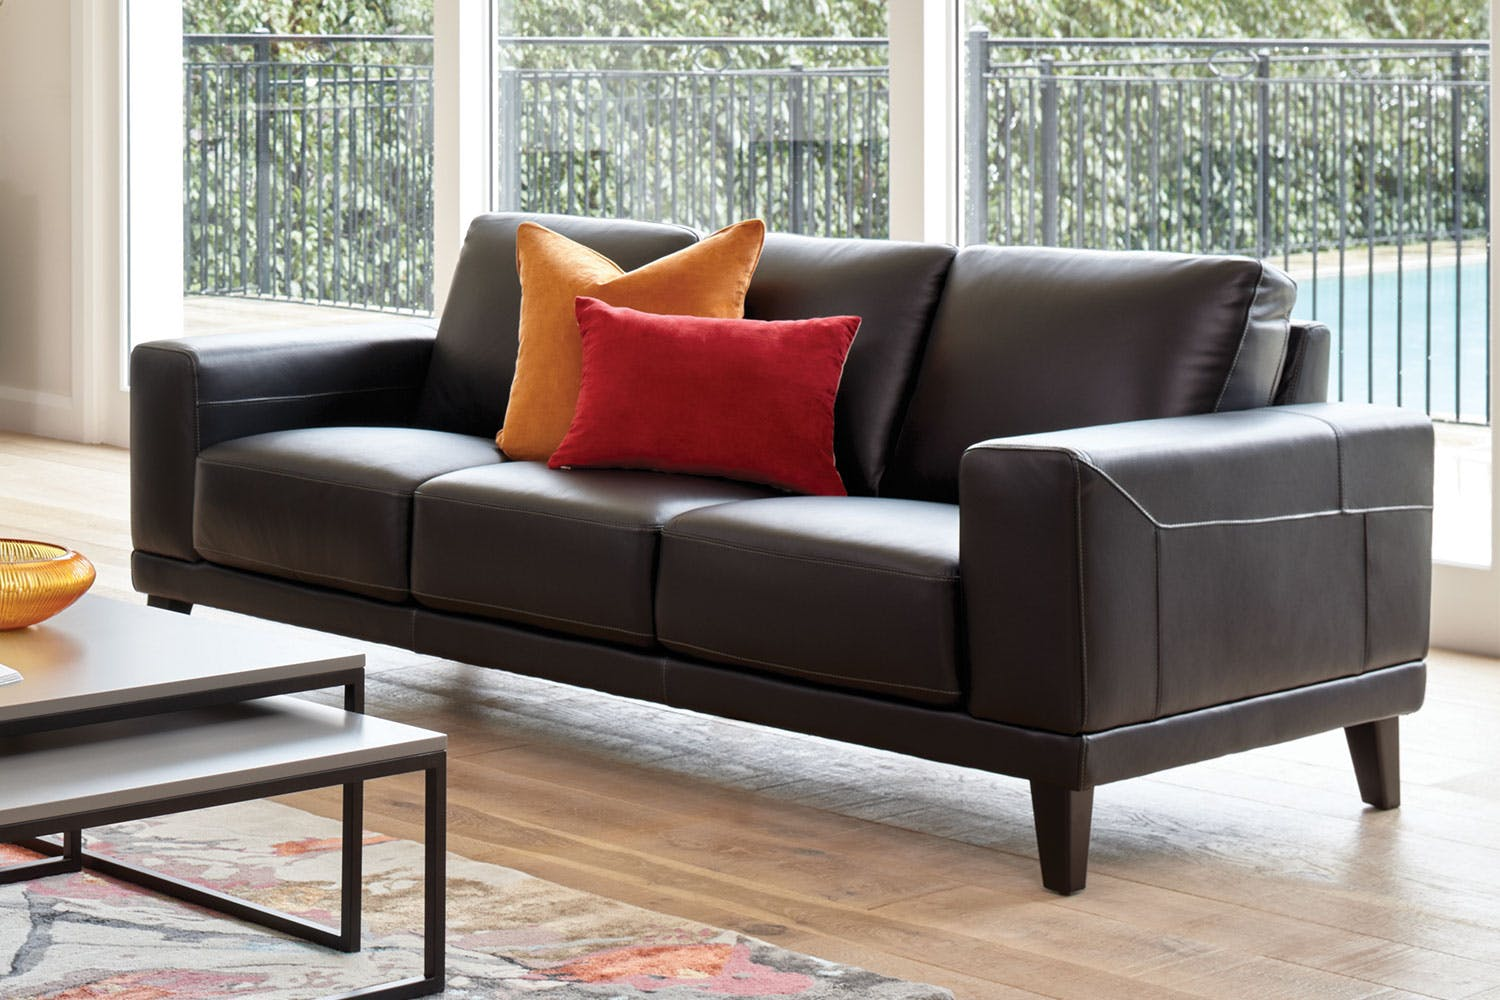 Aries 3 Seater Leather Sofa | Harvey Norman New Zealand